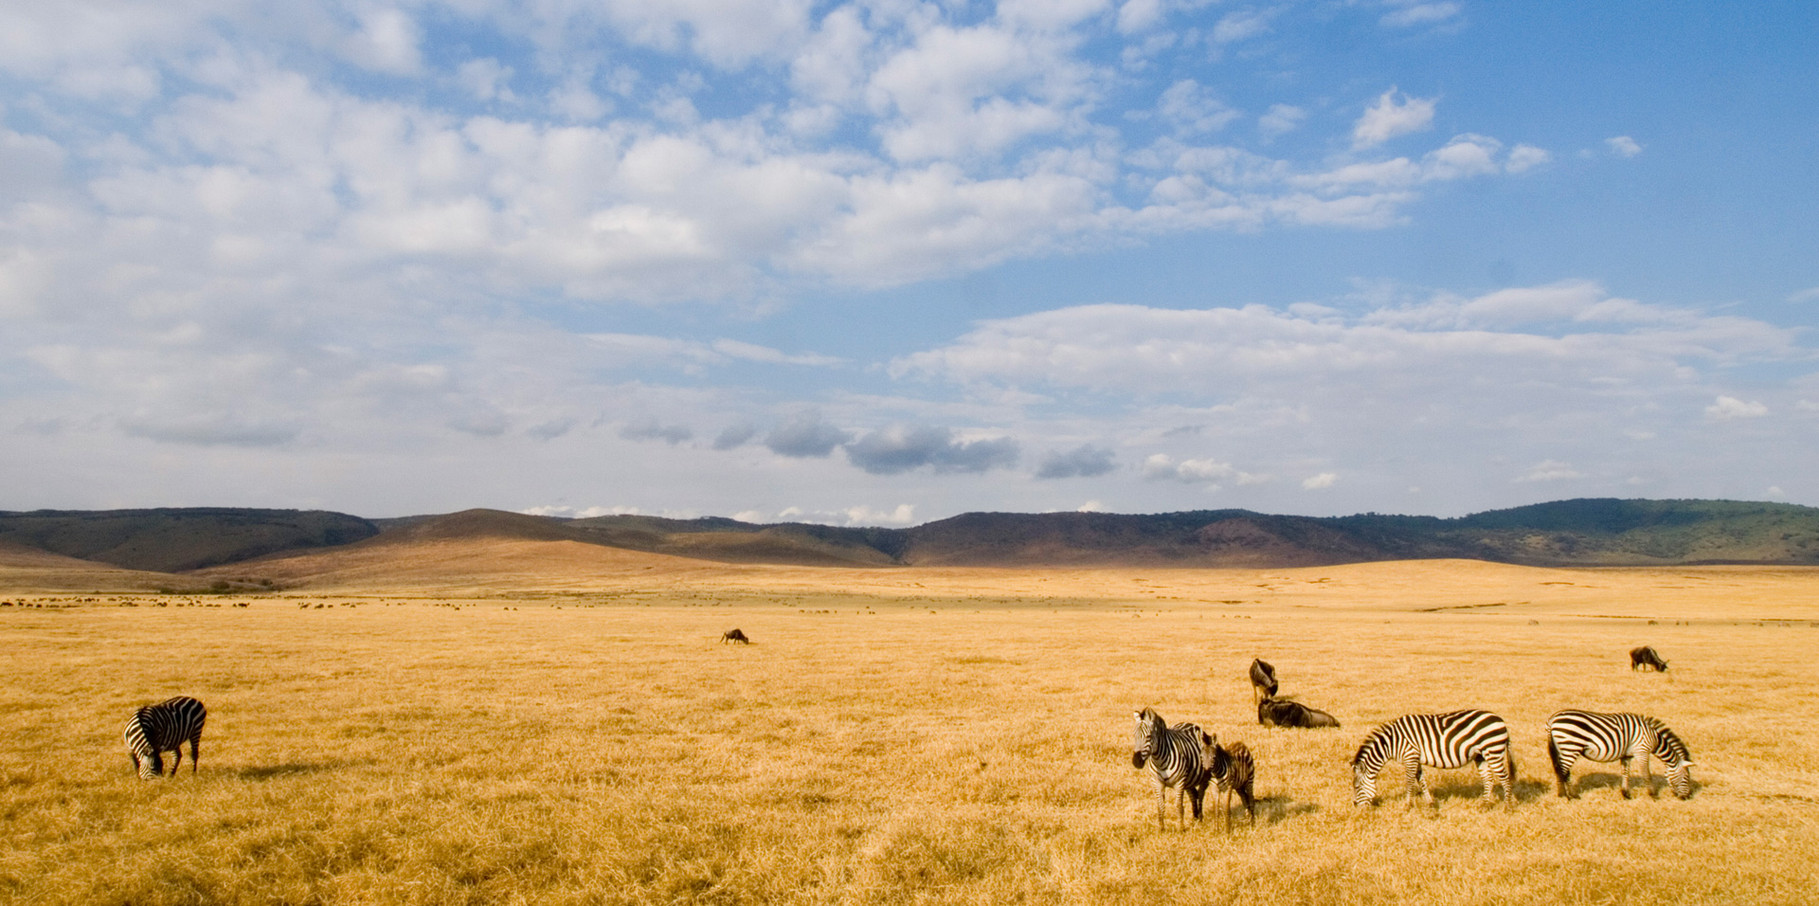 Ngorongoro during dry season, 2012